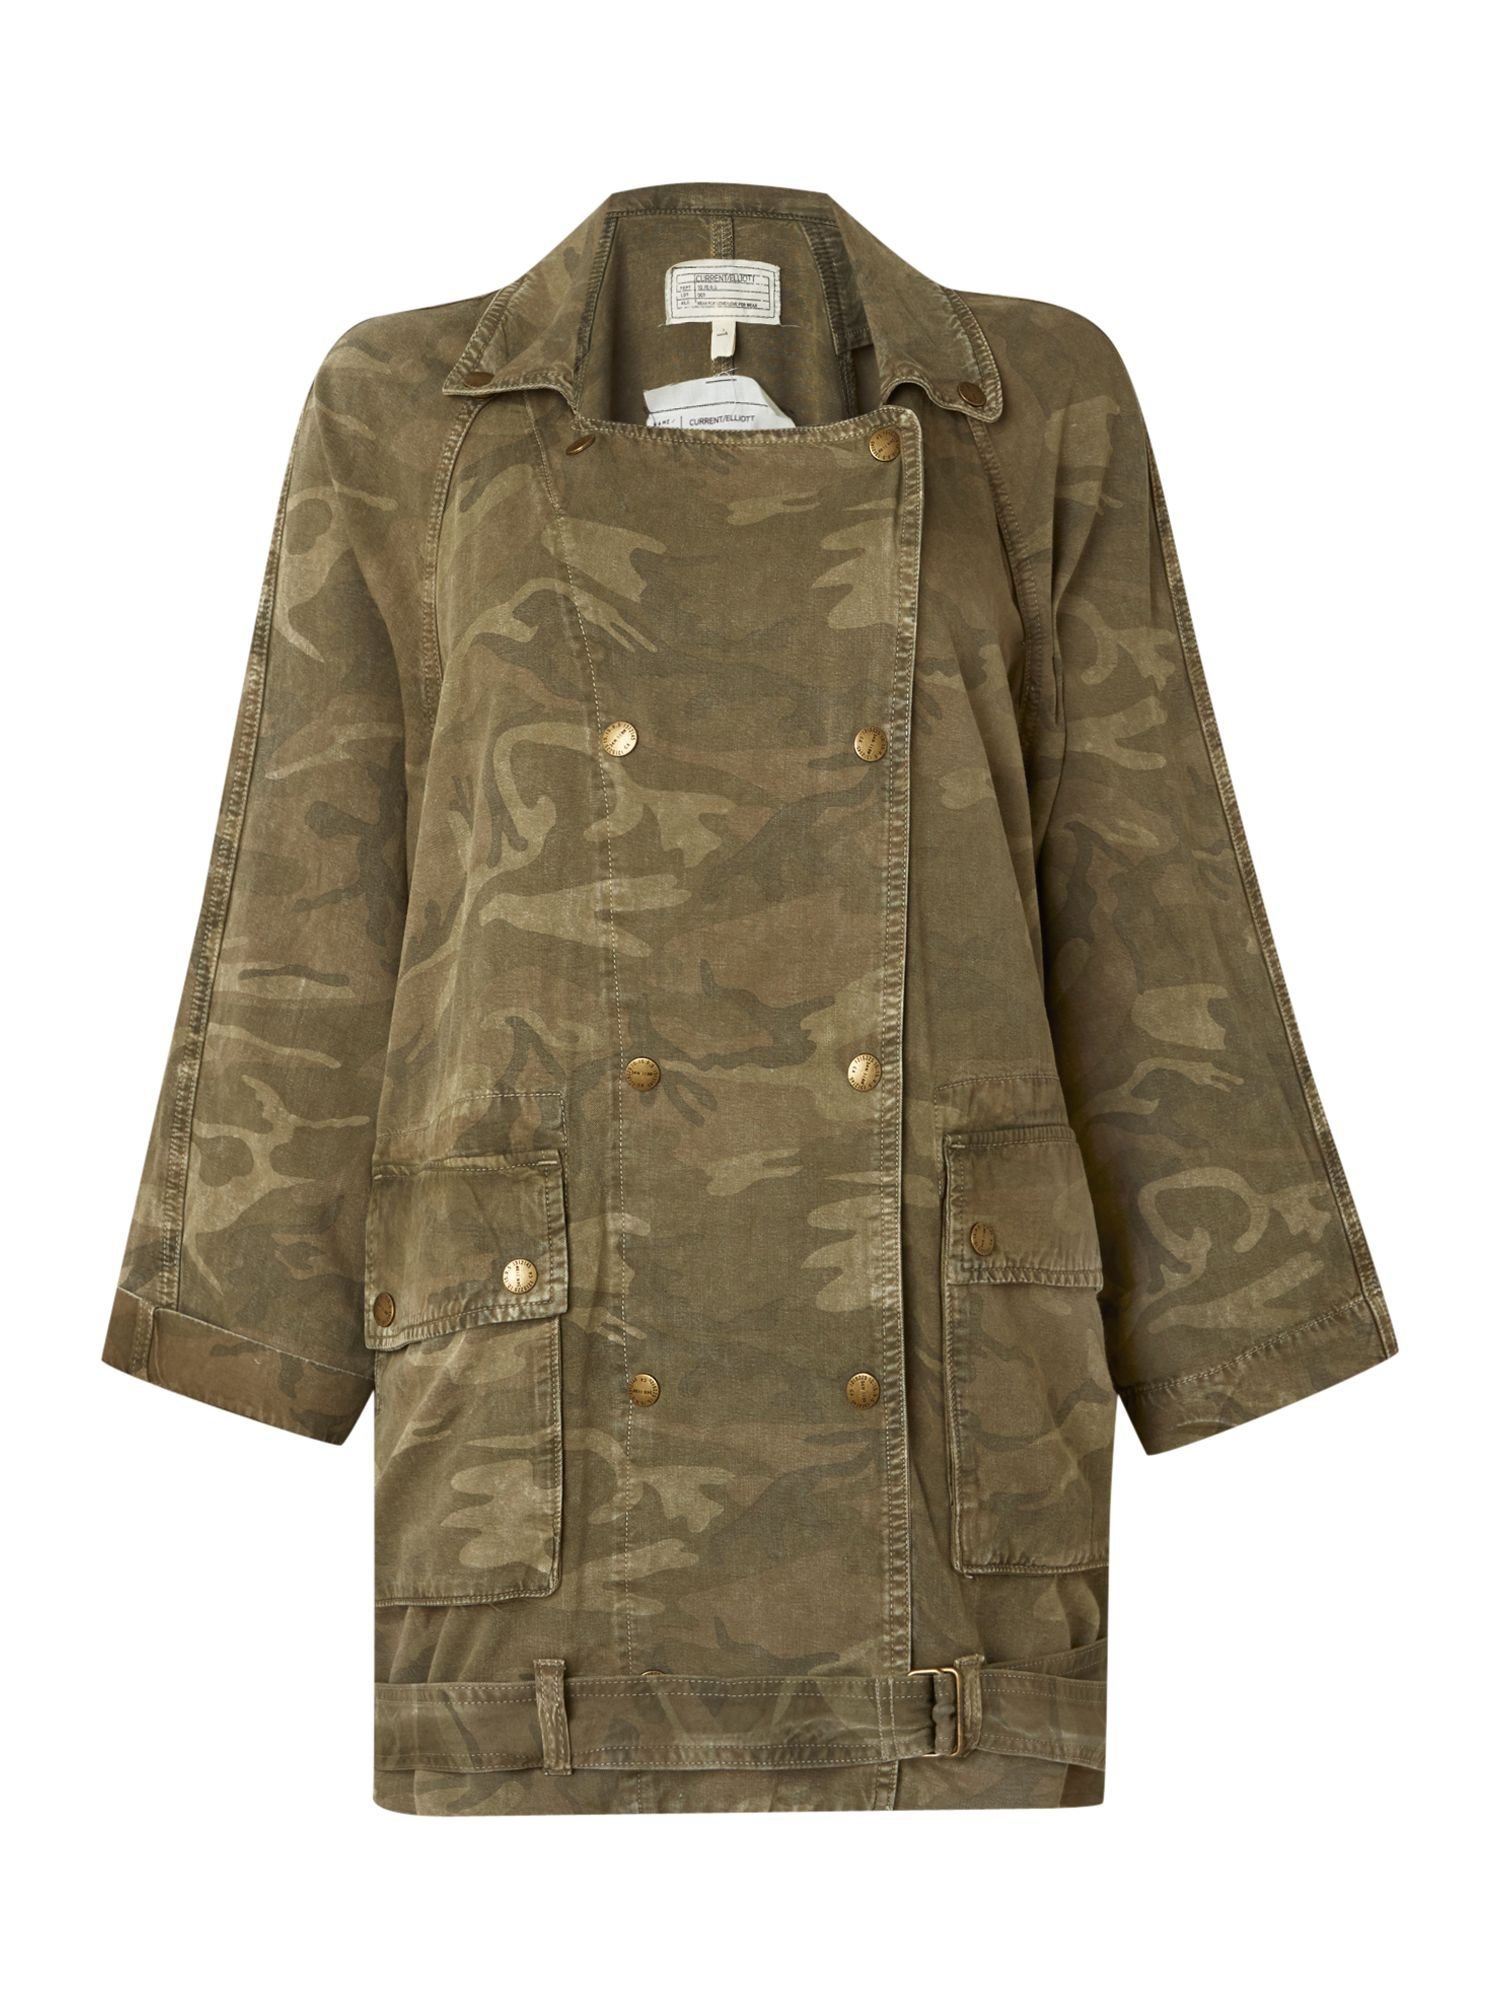 The infantry military jacket in army camo